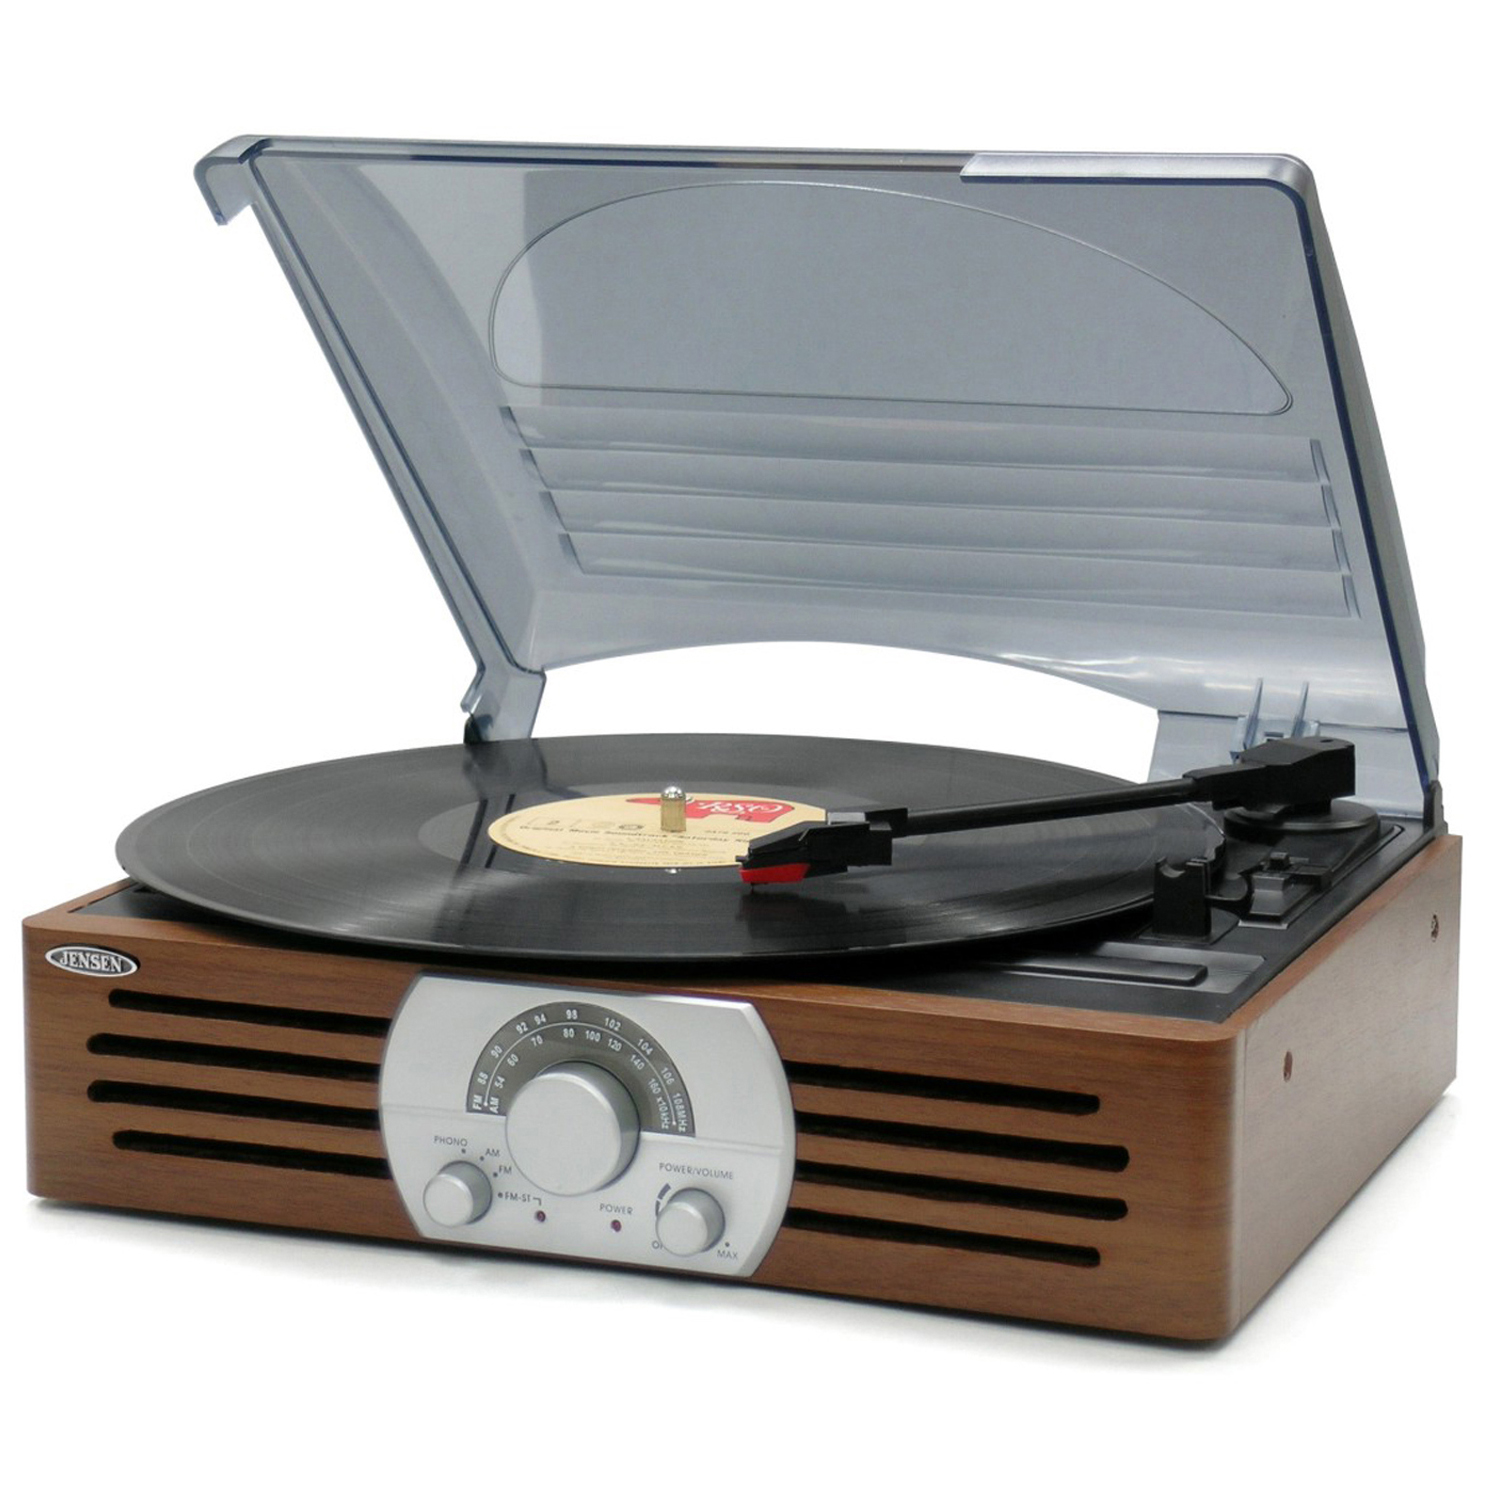 JENSEN JTA300 3-SPEED STEREO TURNTABLE WITH AM//FM STEREO RADIO